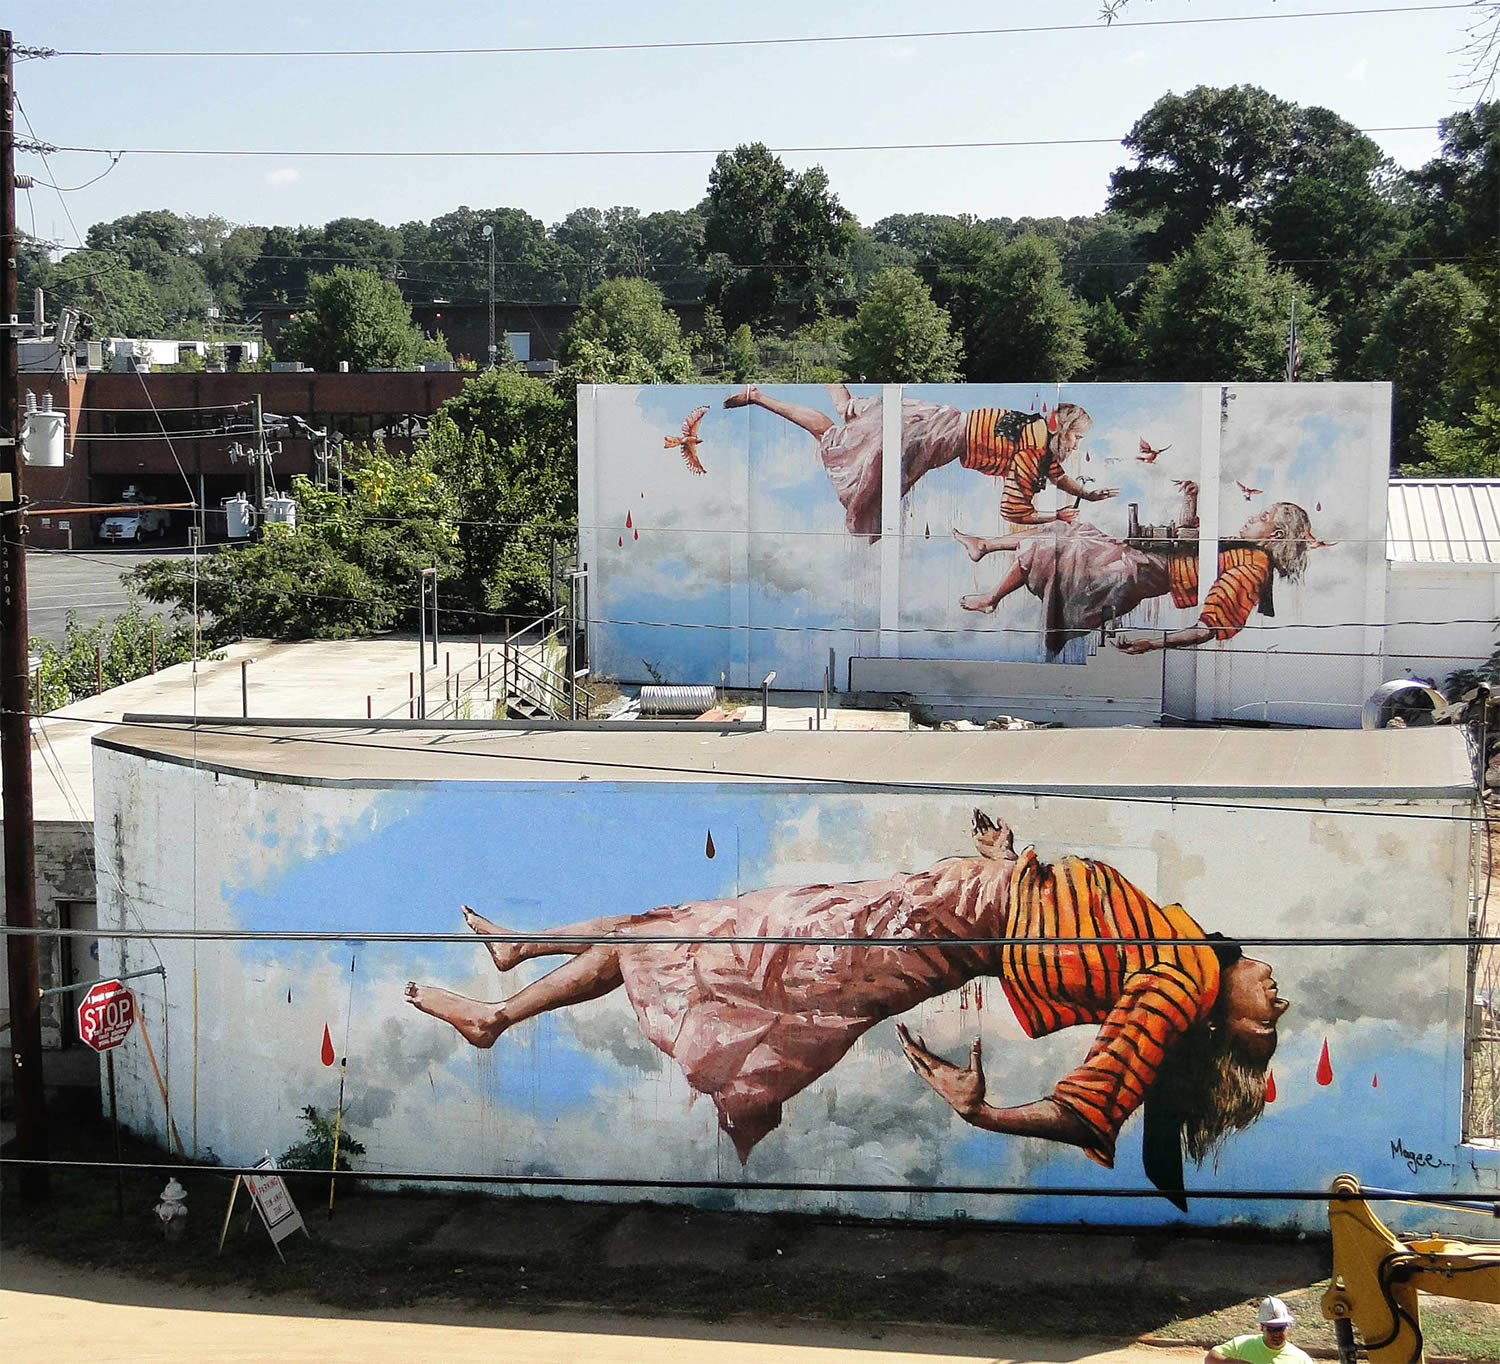 woman suspended in air, swimming in clouds, painting on building wall